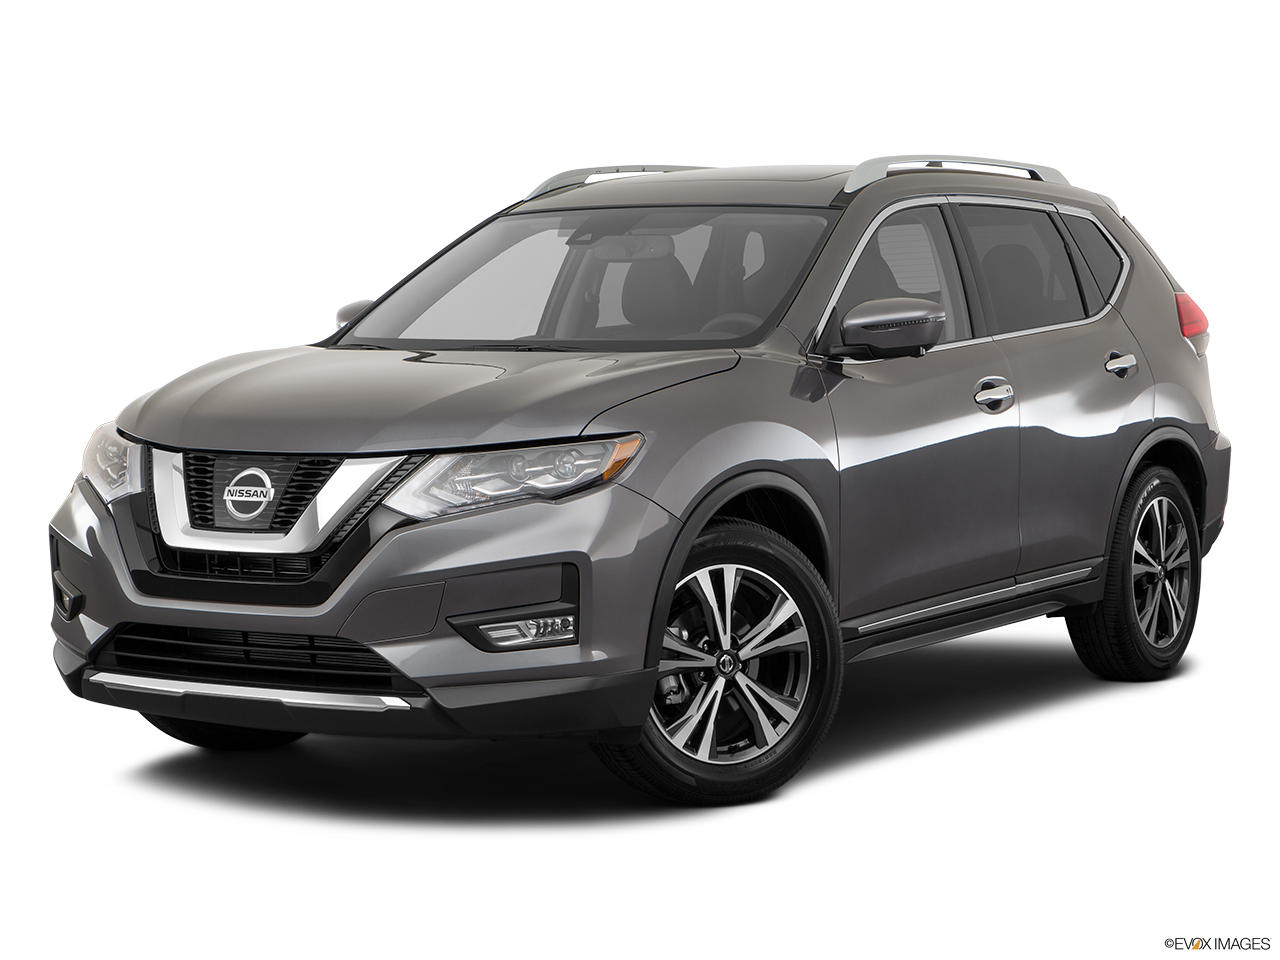 Test Drive A 2017 Nissan Rogue® at Empire Nissan in Ontario